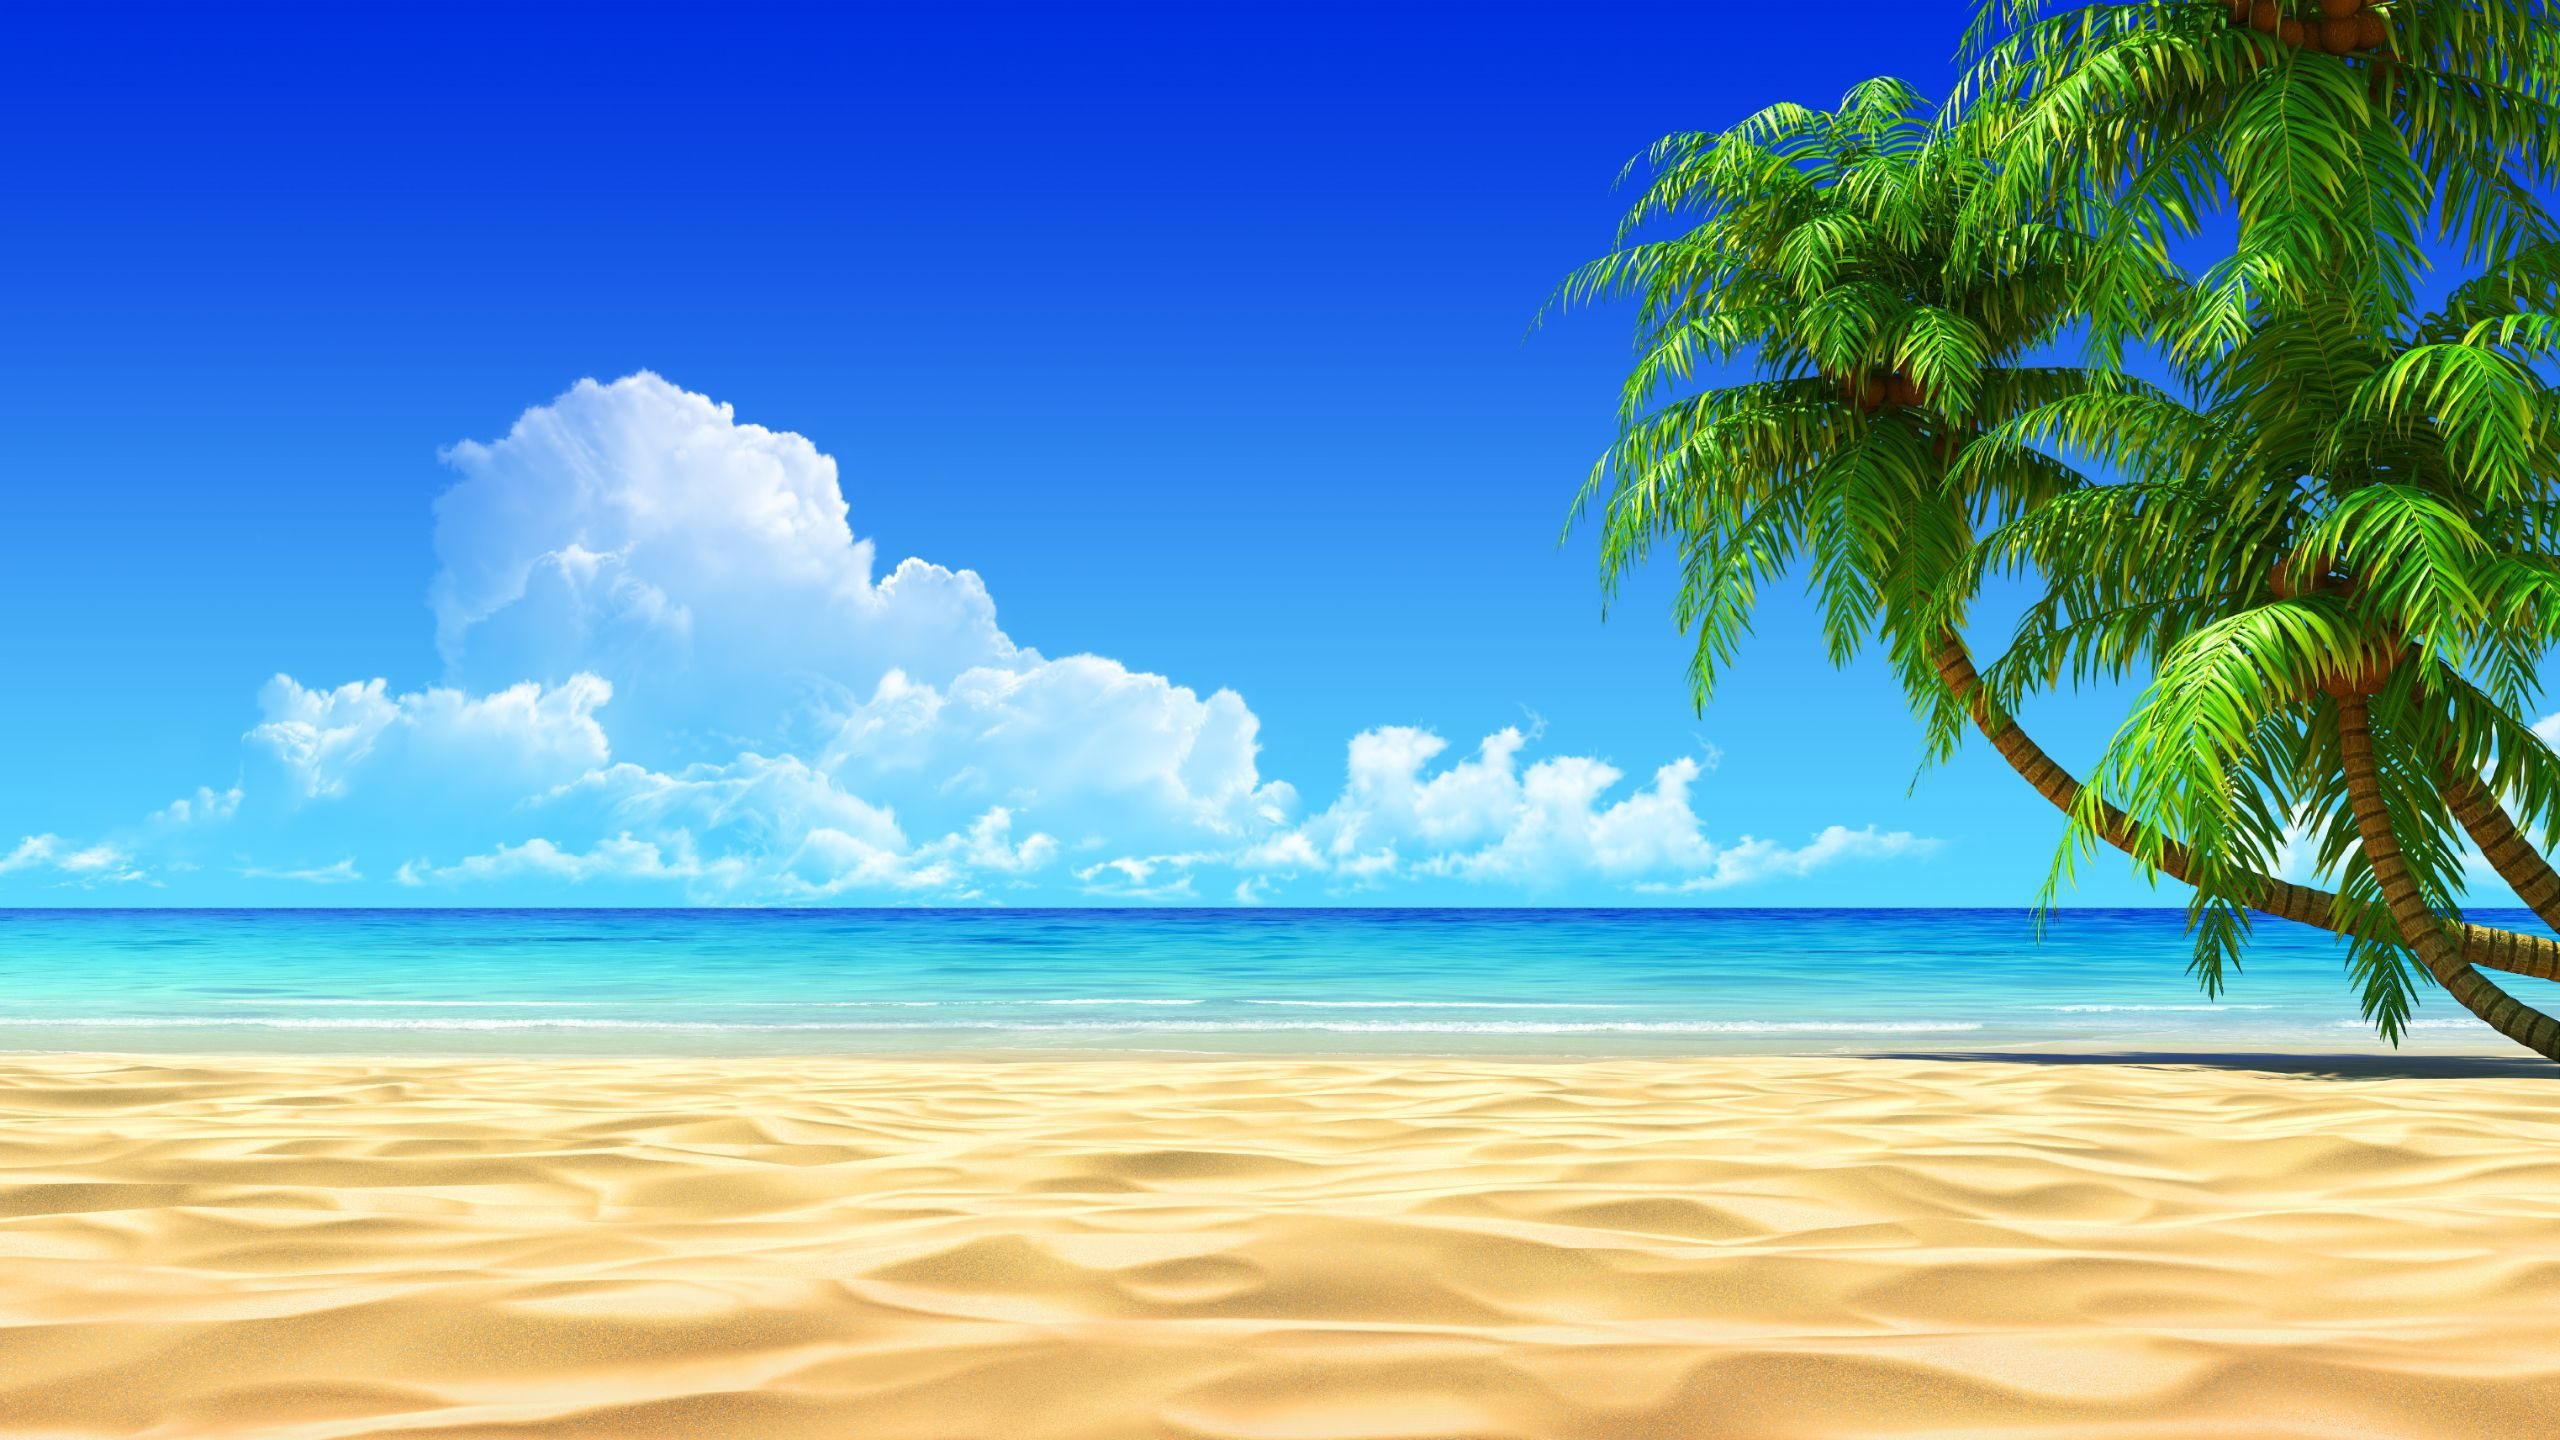 65 Aruba Beachfront Scene Desktop Wallpapers   Download at 2560x1440